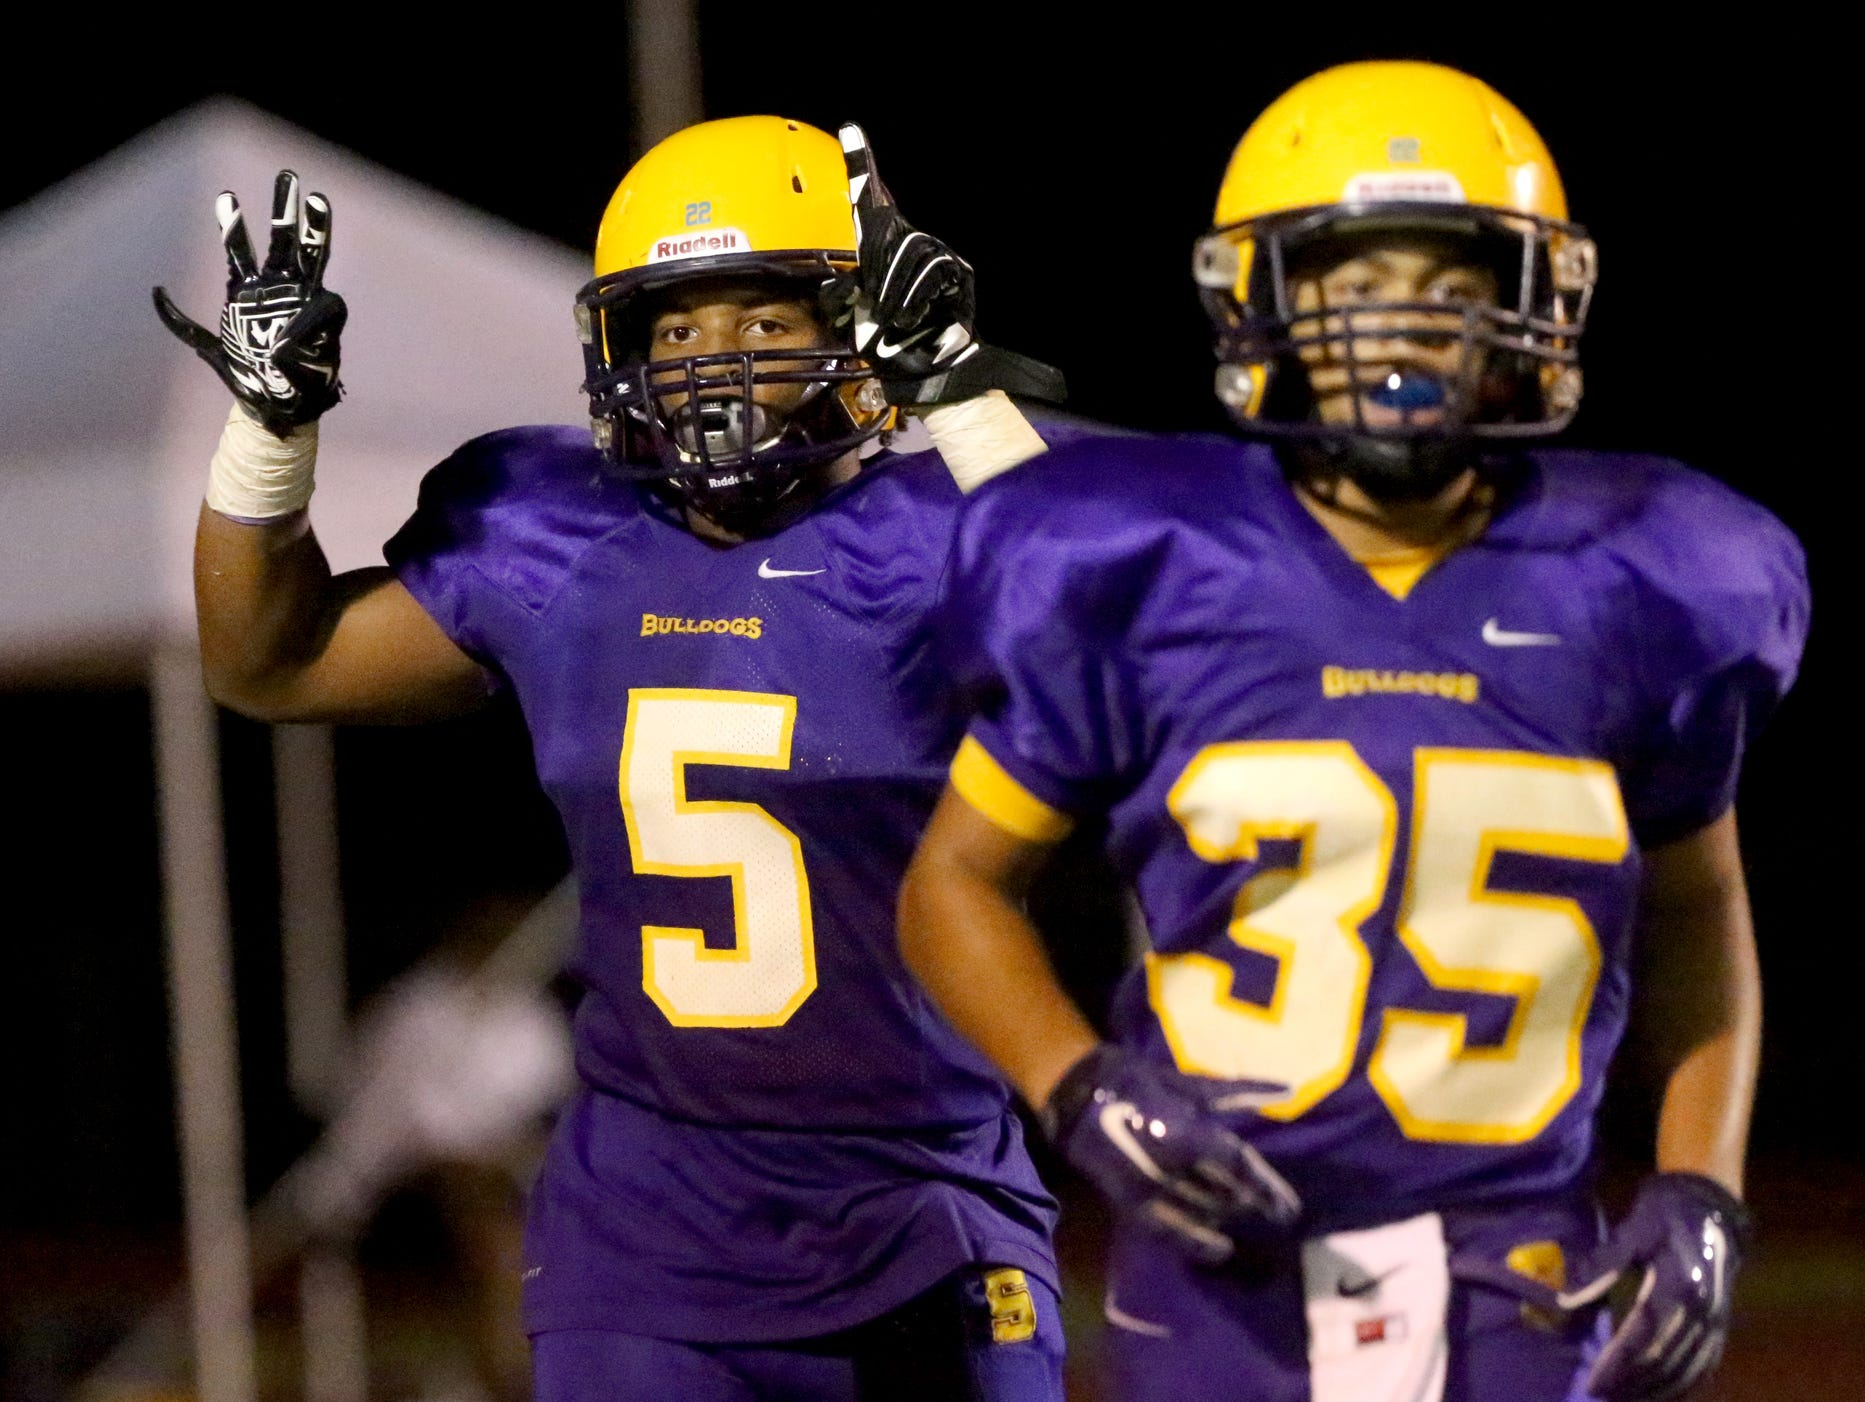 After scoring Smyrna's fourth touchdown against Siegel, Smyrna's Casey Perkins (5) holds up a 31 for injured teammate Deven Sims (31), who was taken to the hospital by ambulance earlier in the game against Siegel at Smyrna, on Friday Sept. 25, 2015. Smyrna teamate Blake Watkins (35) comes off the field with Perkins.